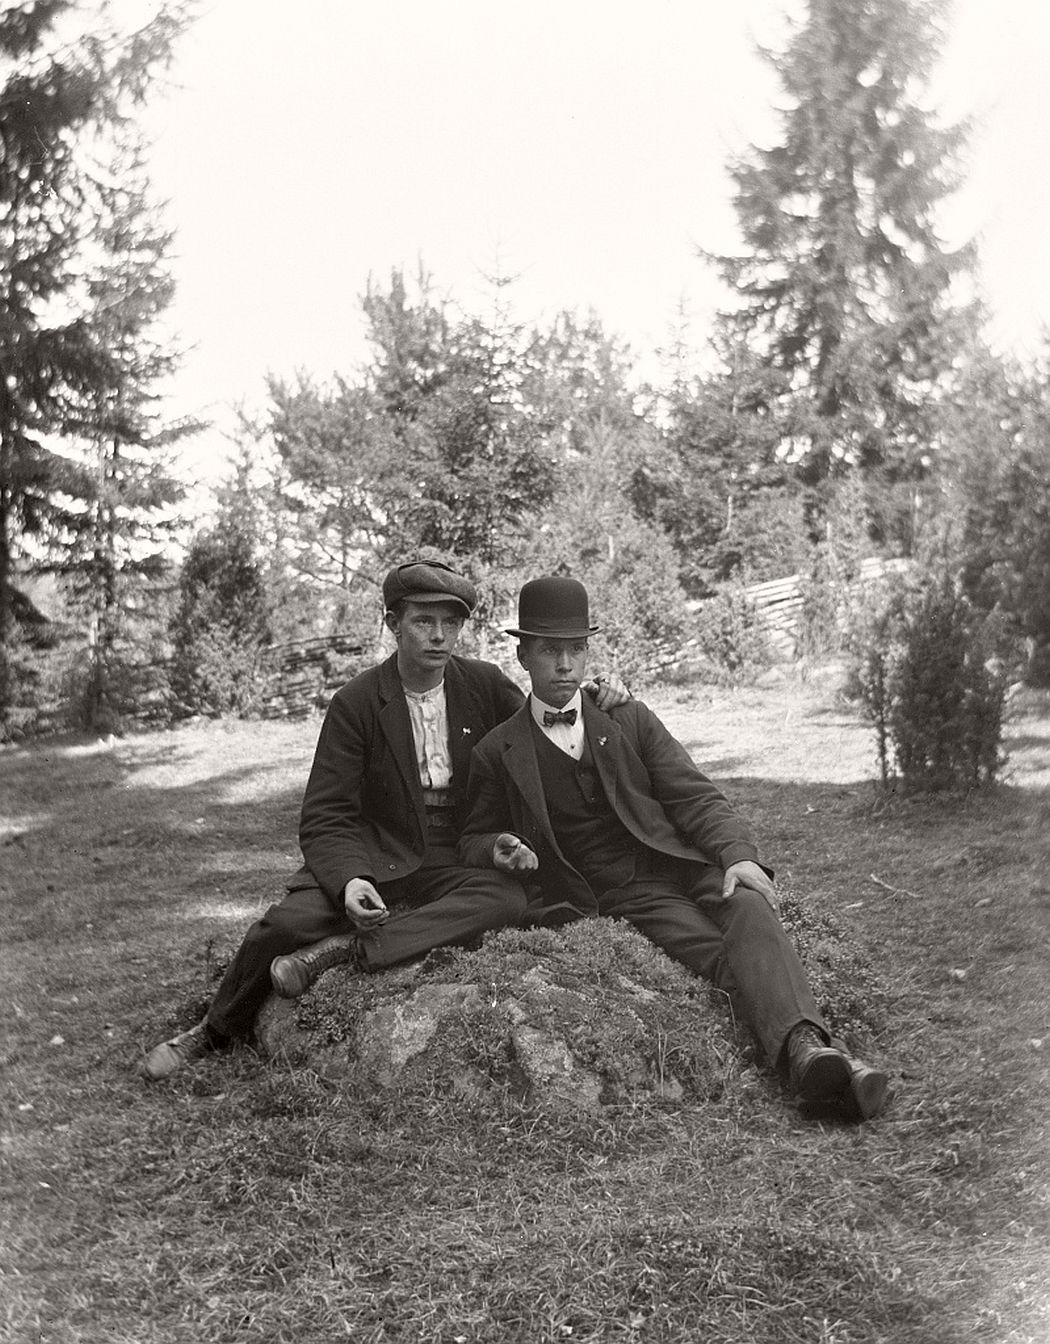 Two men on stone. To the left of the stone is Charles Smith (b. 1892), who was a profession painter and well known in Frinnaryd. The man on the right is not yet identified.